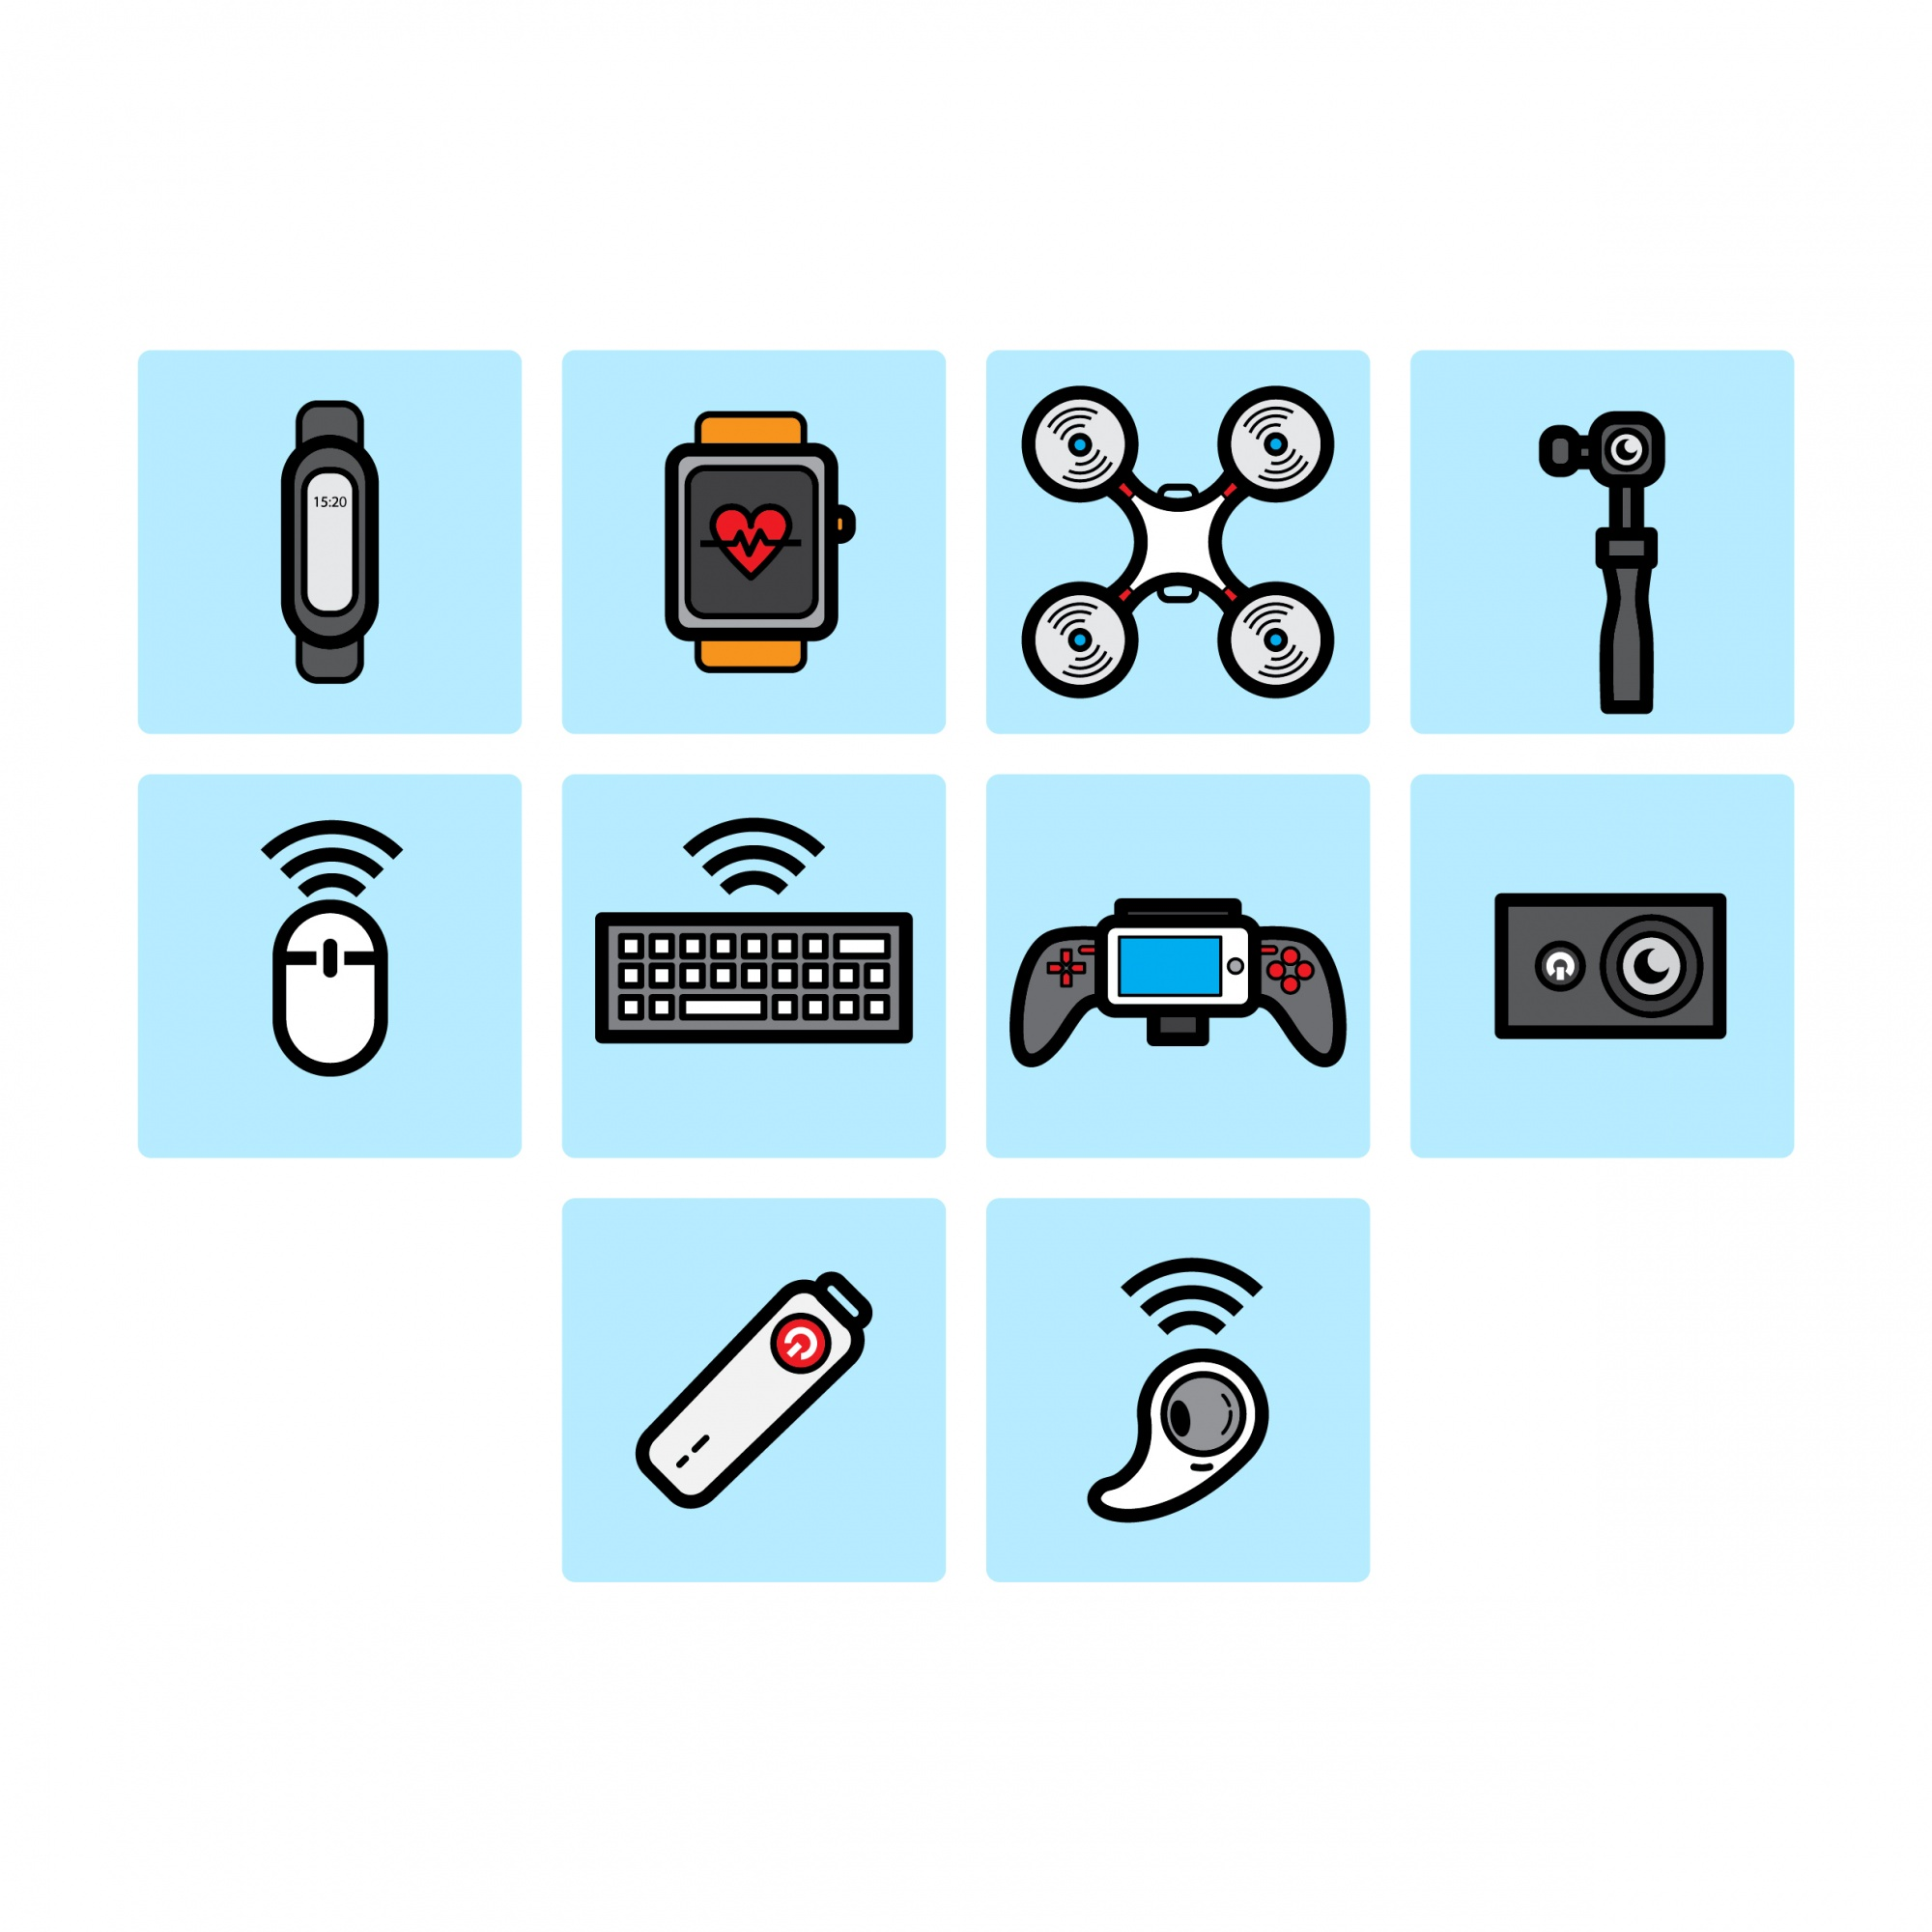 Flachfarben-Technologie-Icon-Set